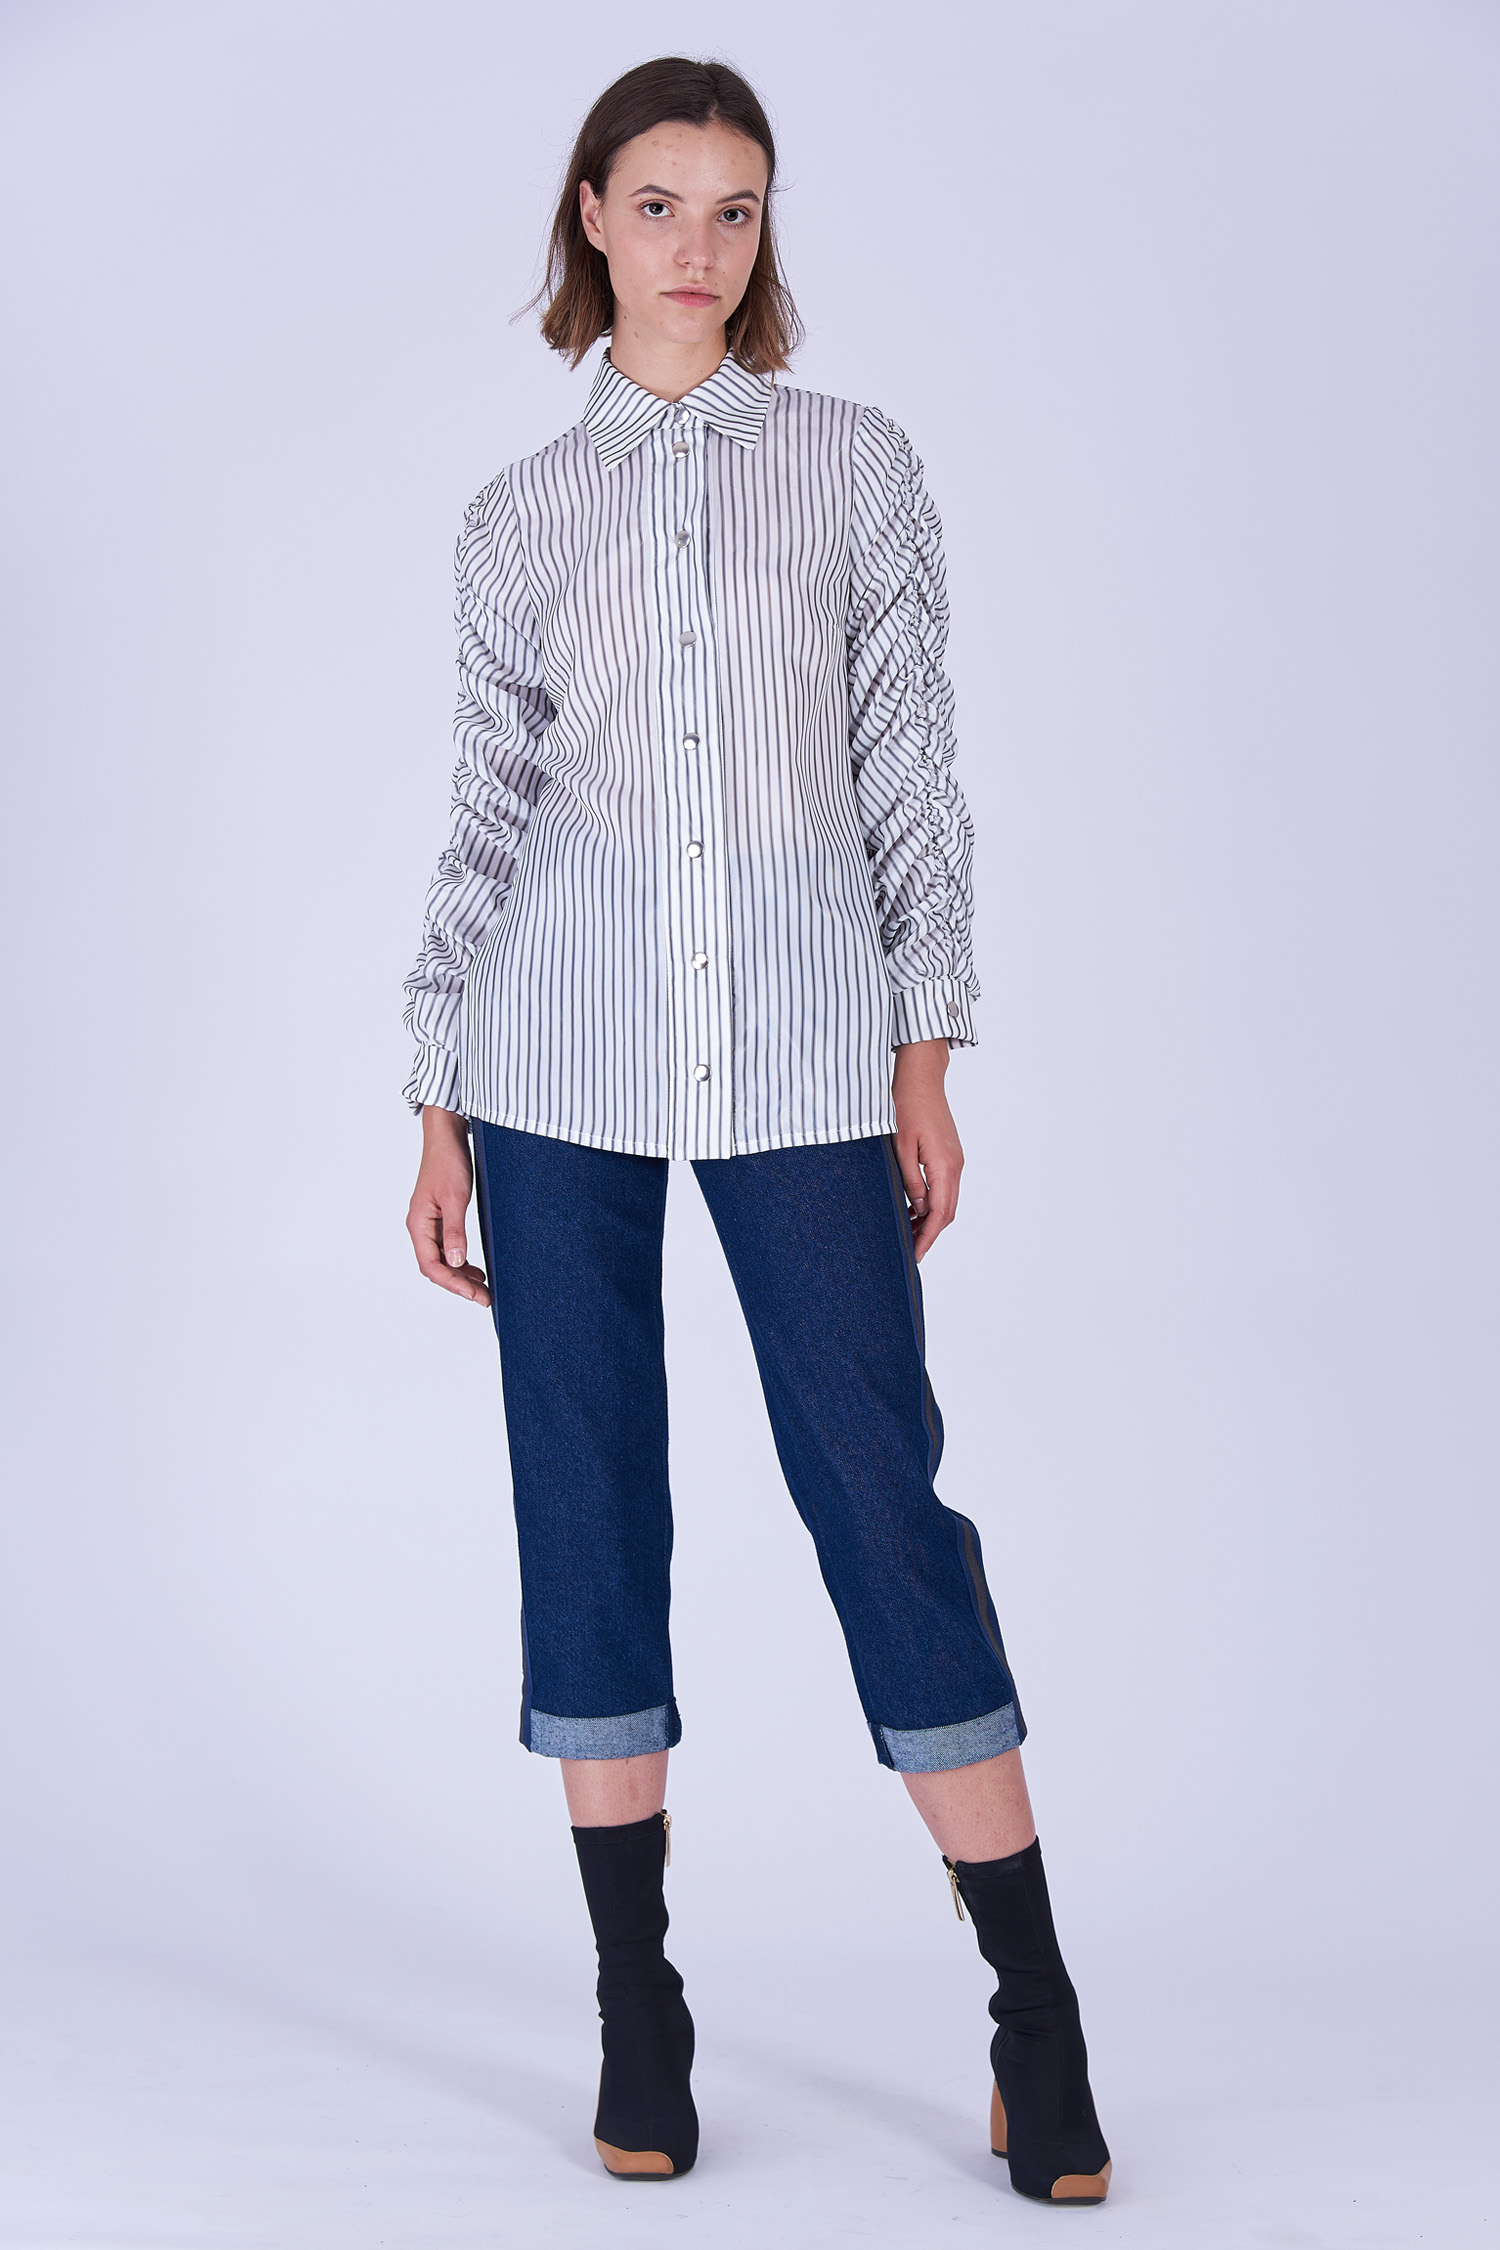 Acephala Fw19 20 White Striped Buttoned Shirt Biala Koszula Paski Front 1